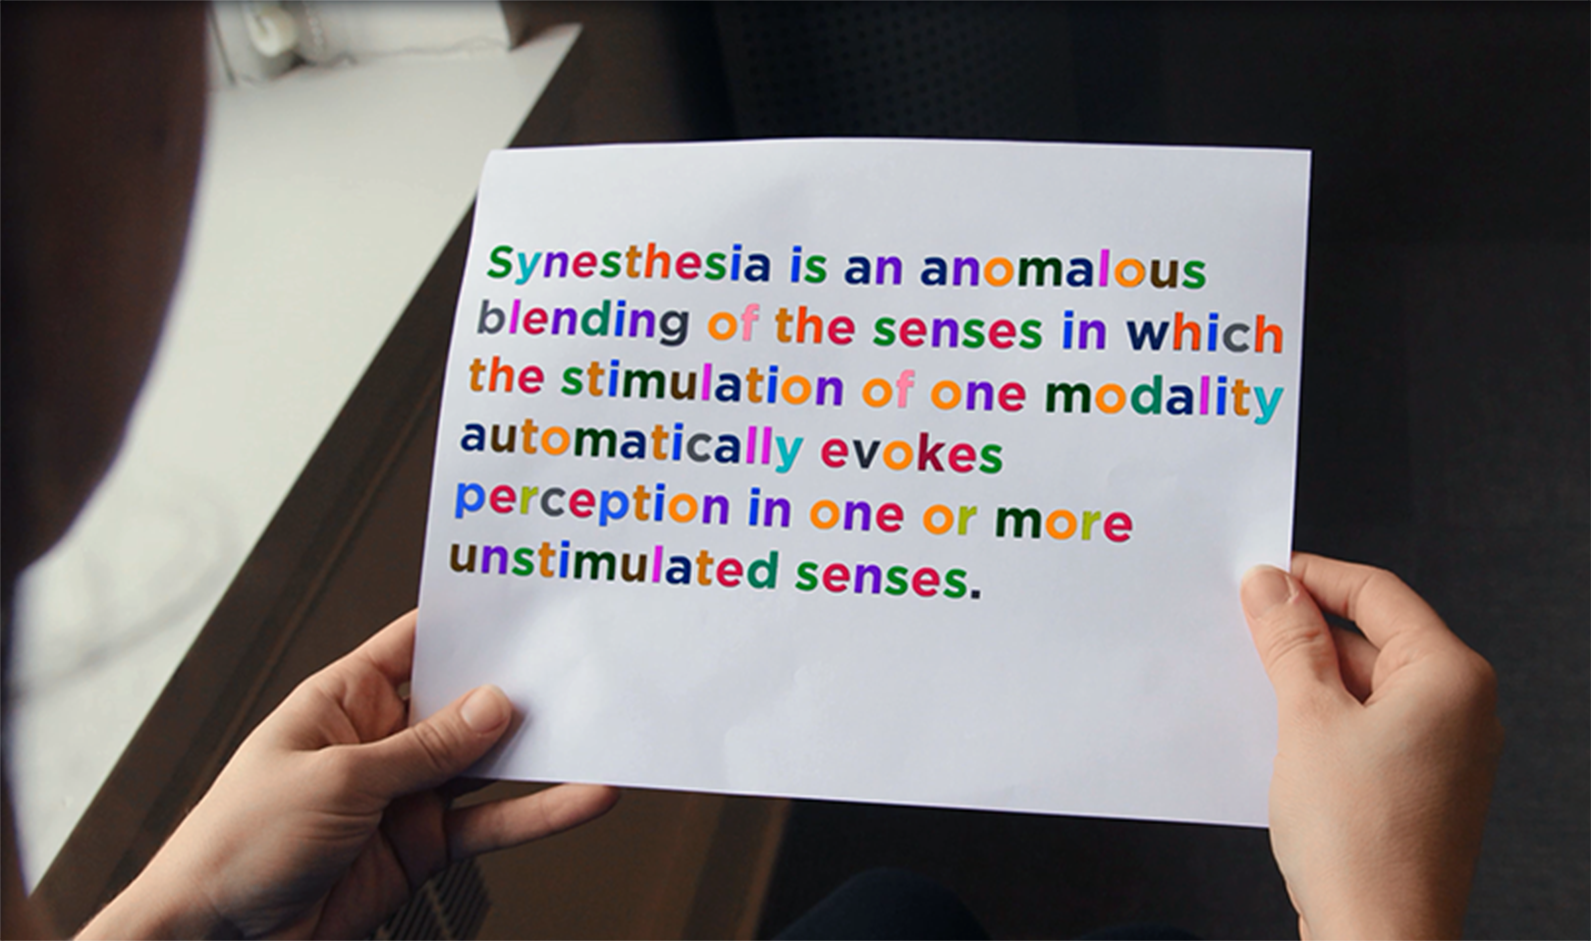 Definition of synesthesia